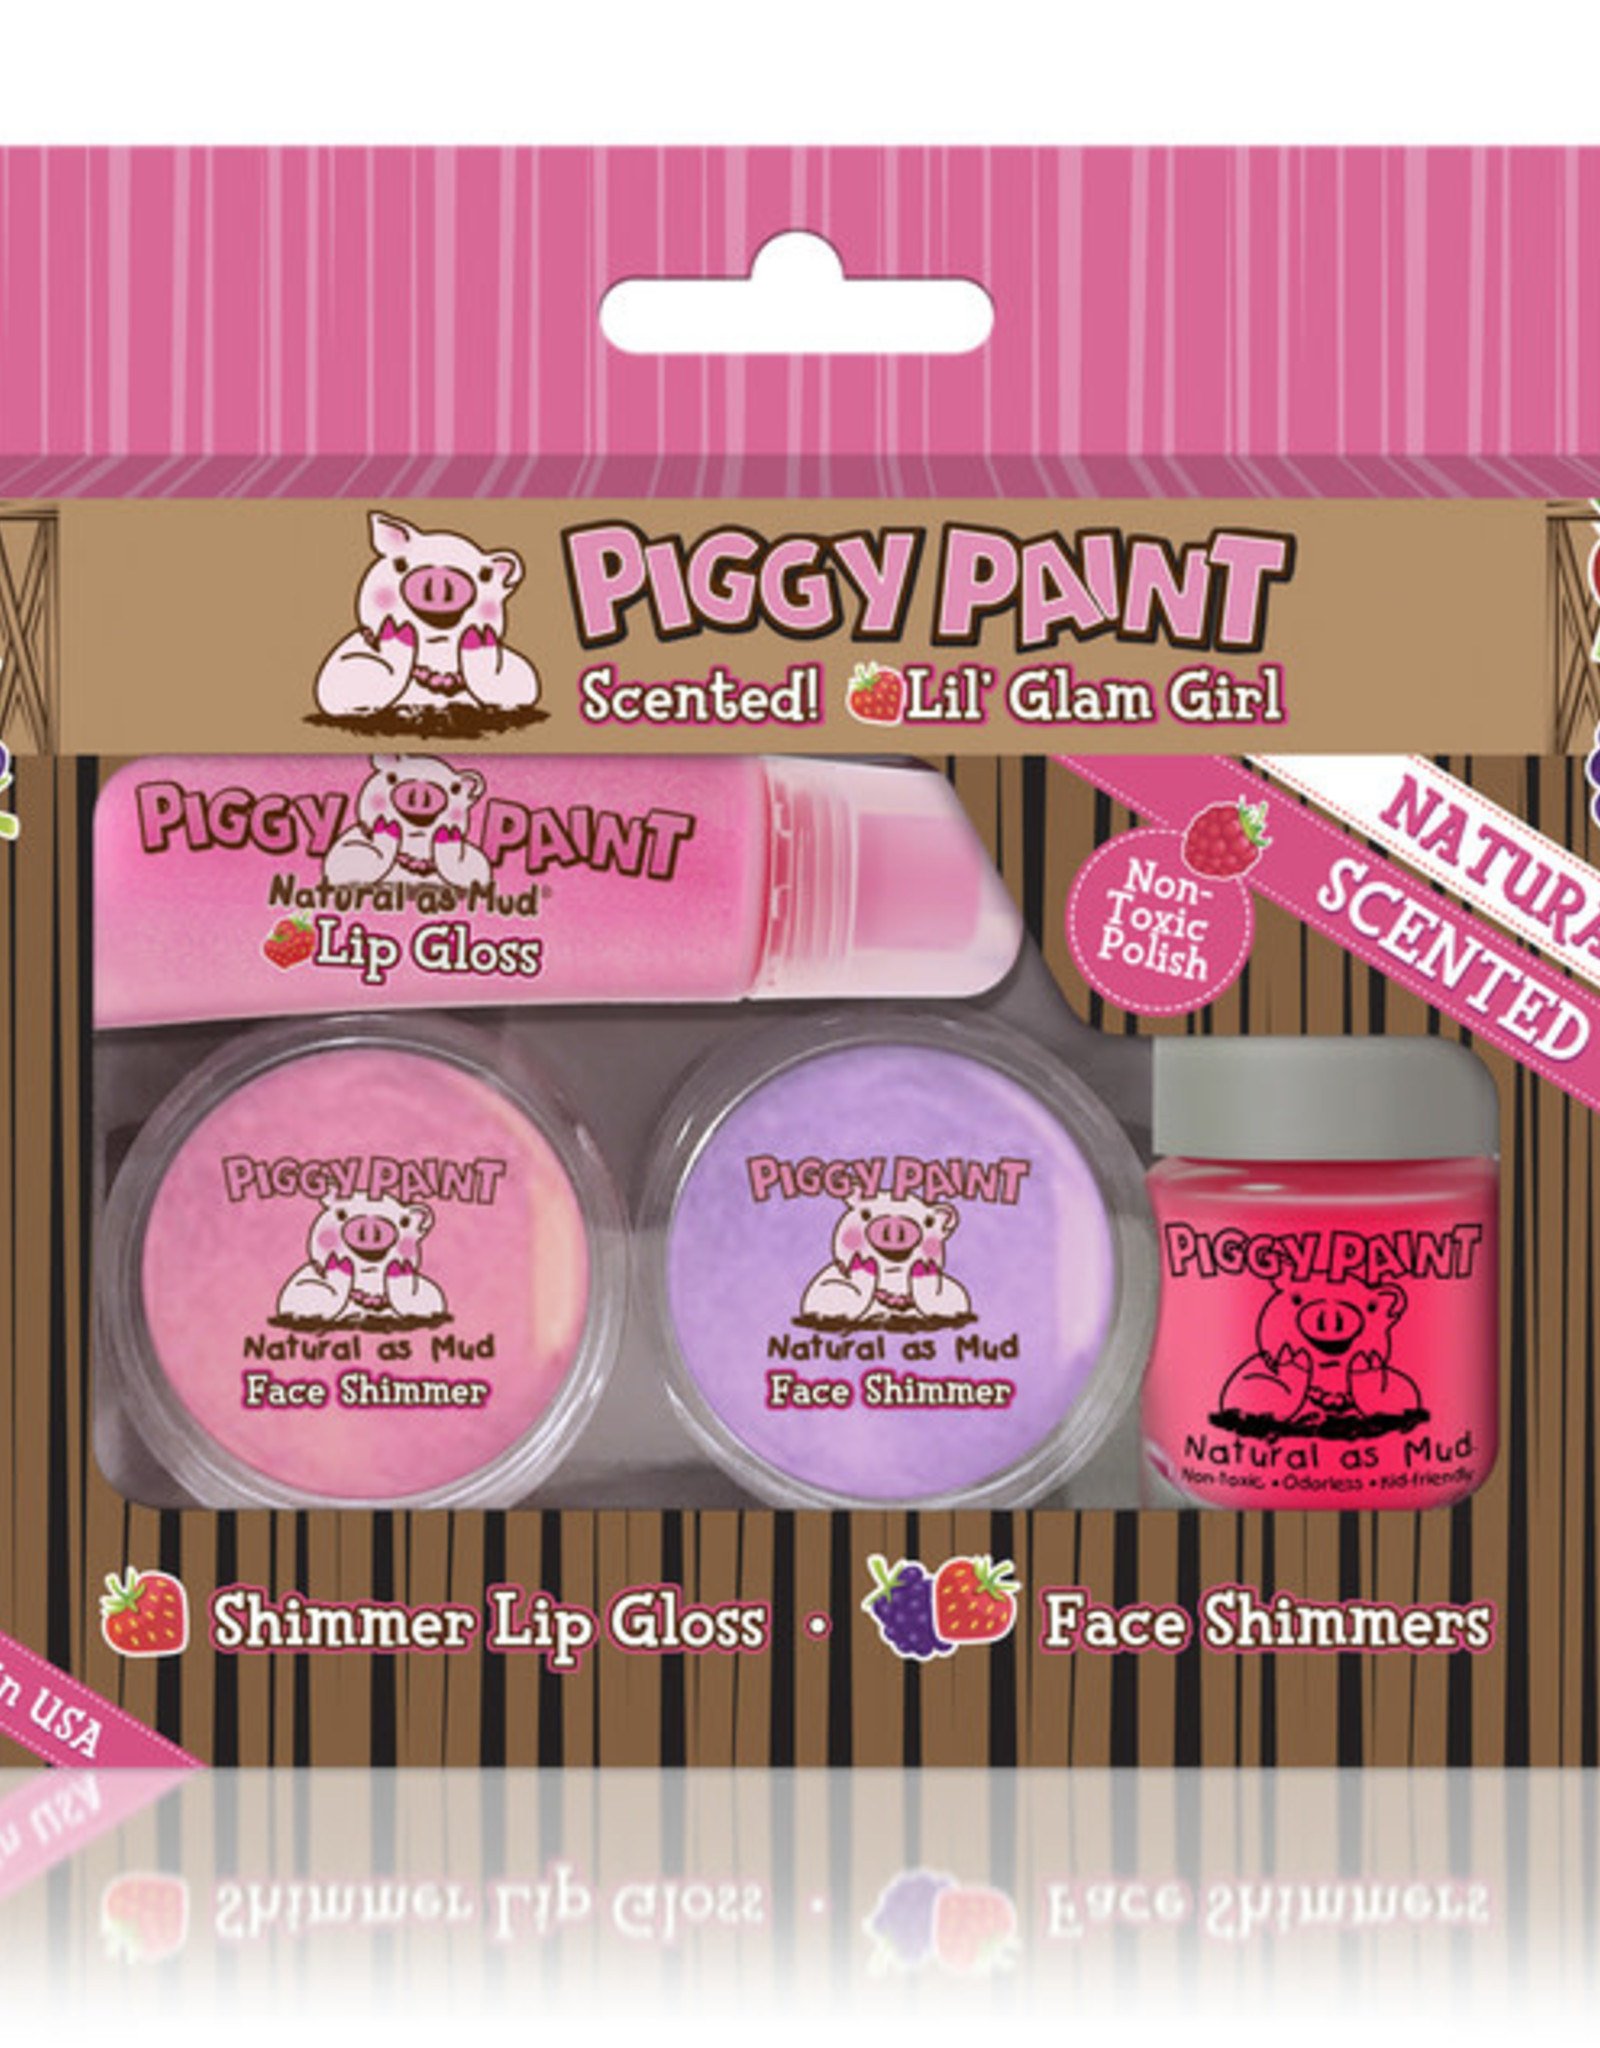 Piggy Paint Lil' Glam Girl